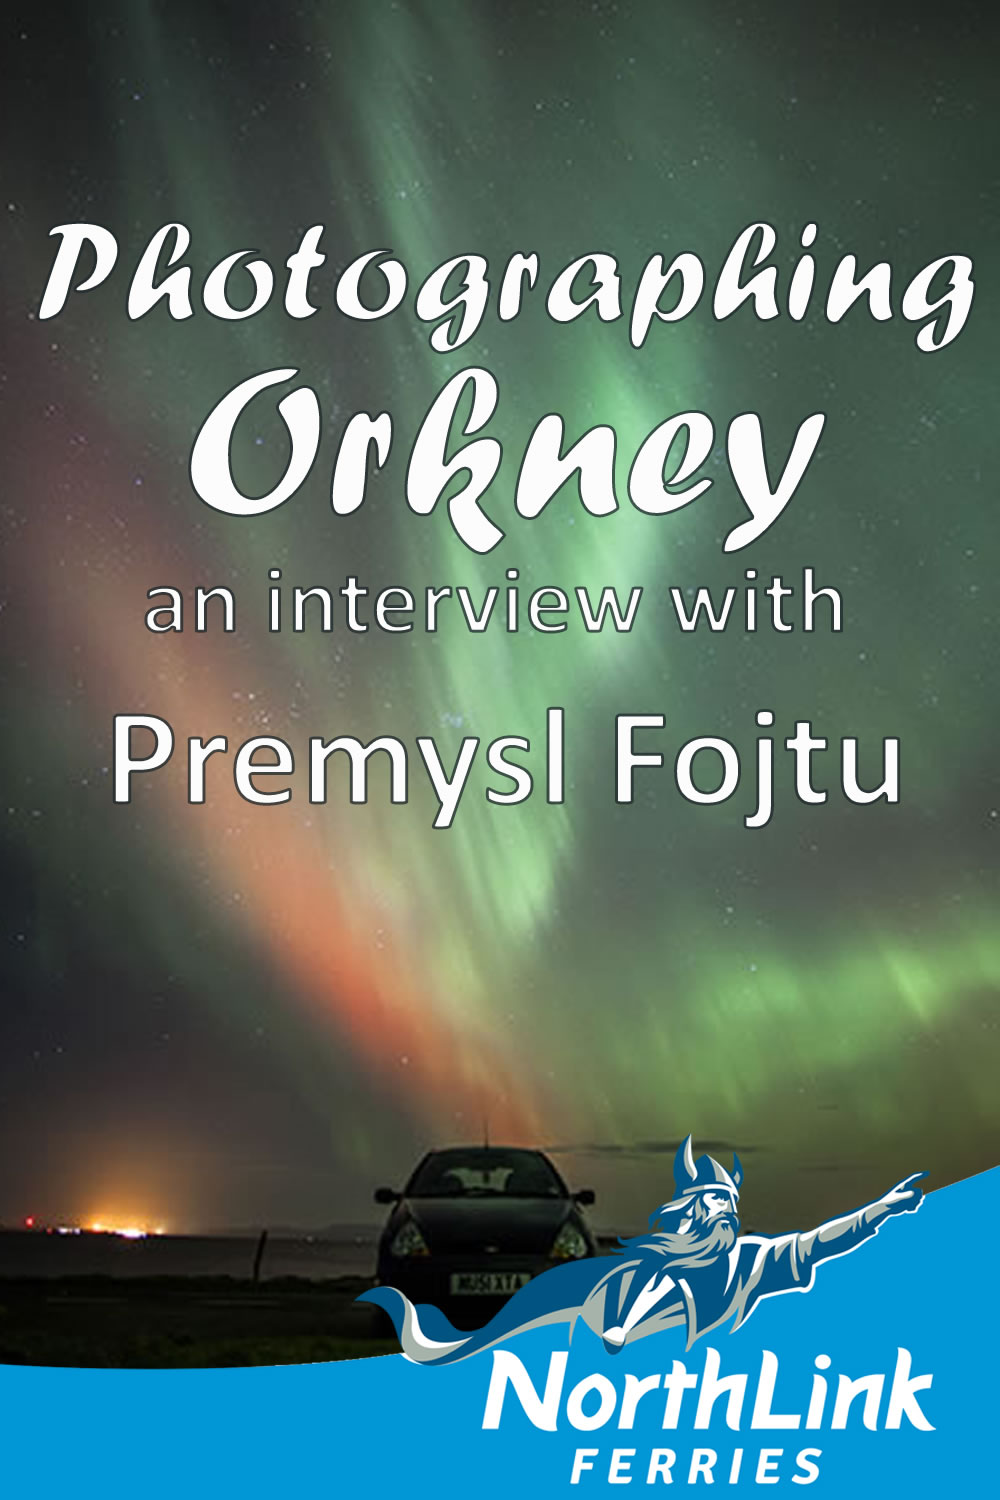 Photographing Orkney – an interview with Premysl Fojtu